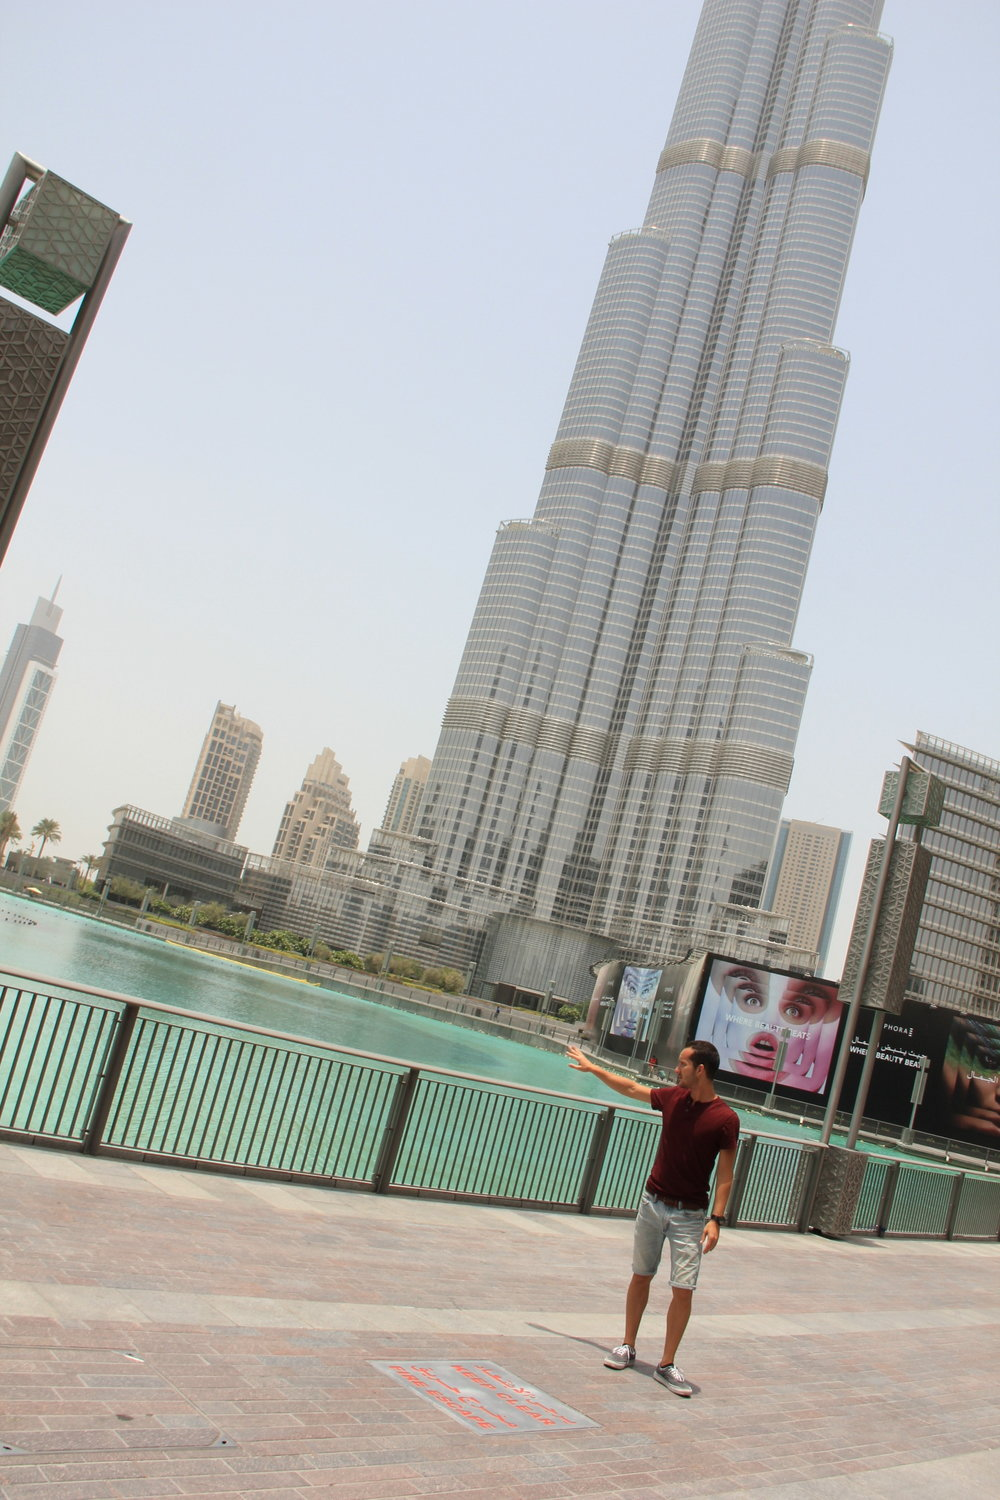 Walking around the plaza in front of the Burj Khalifa and the Dubai Mall. Literally feeling the heat that surrounds you.